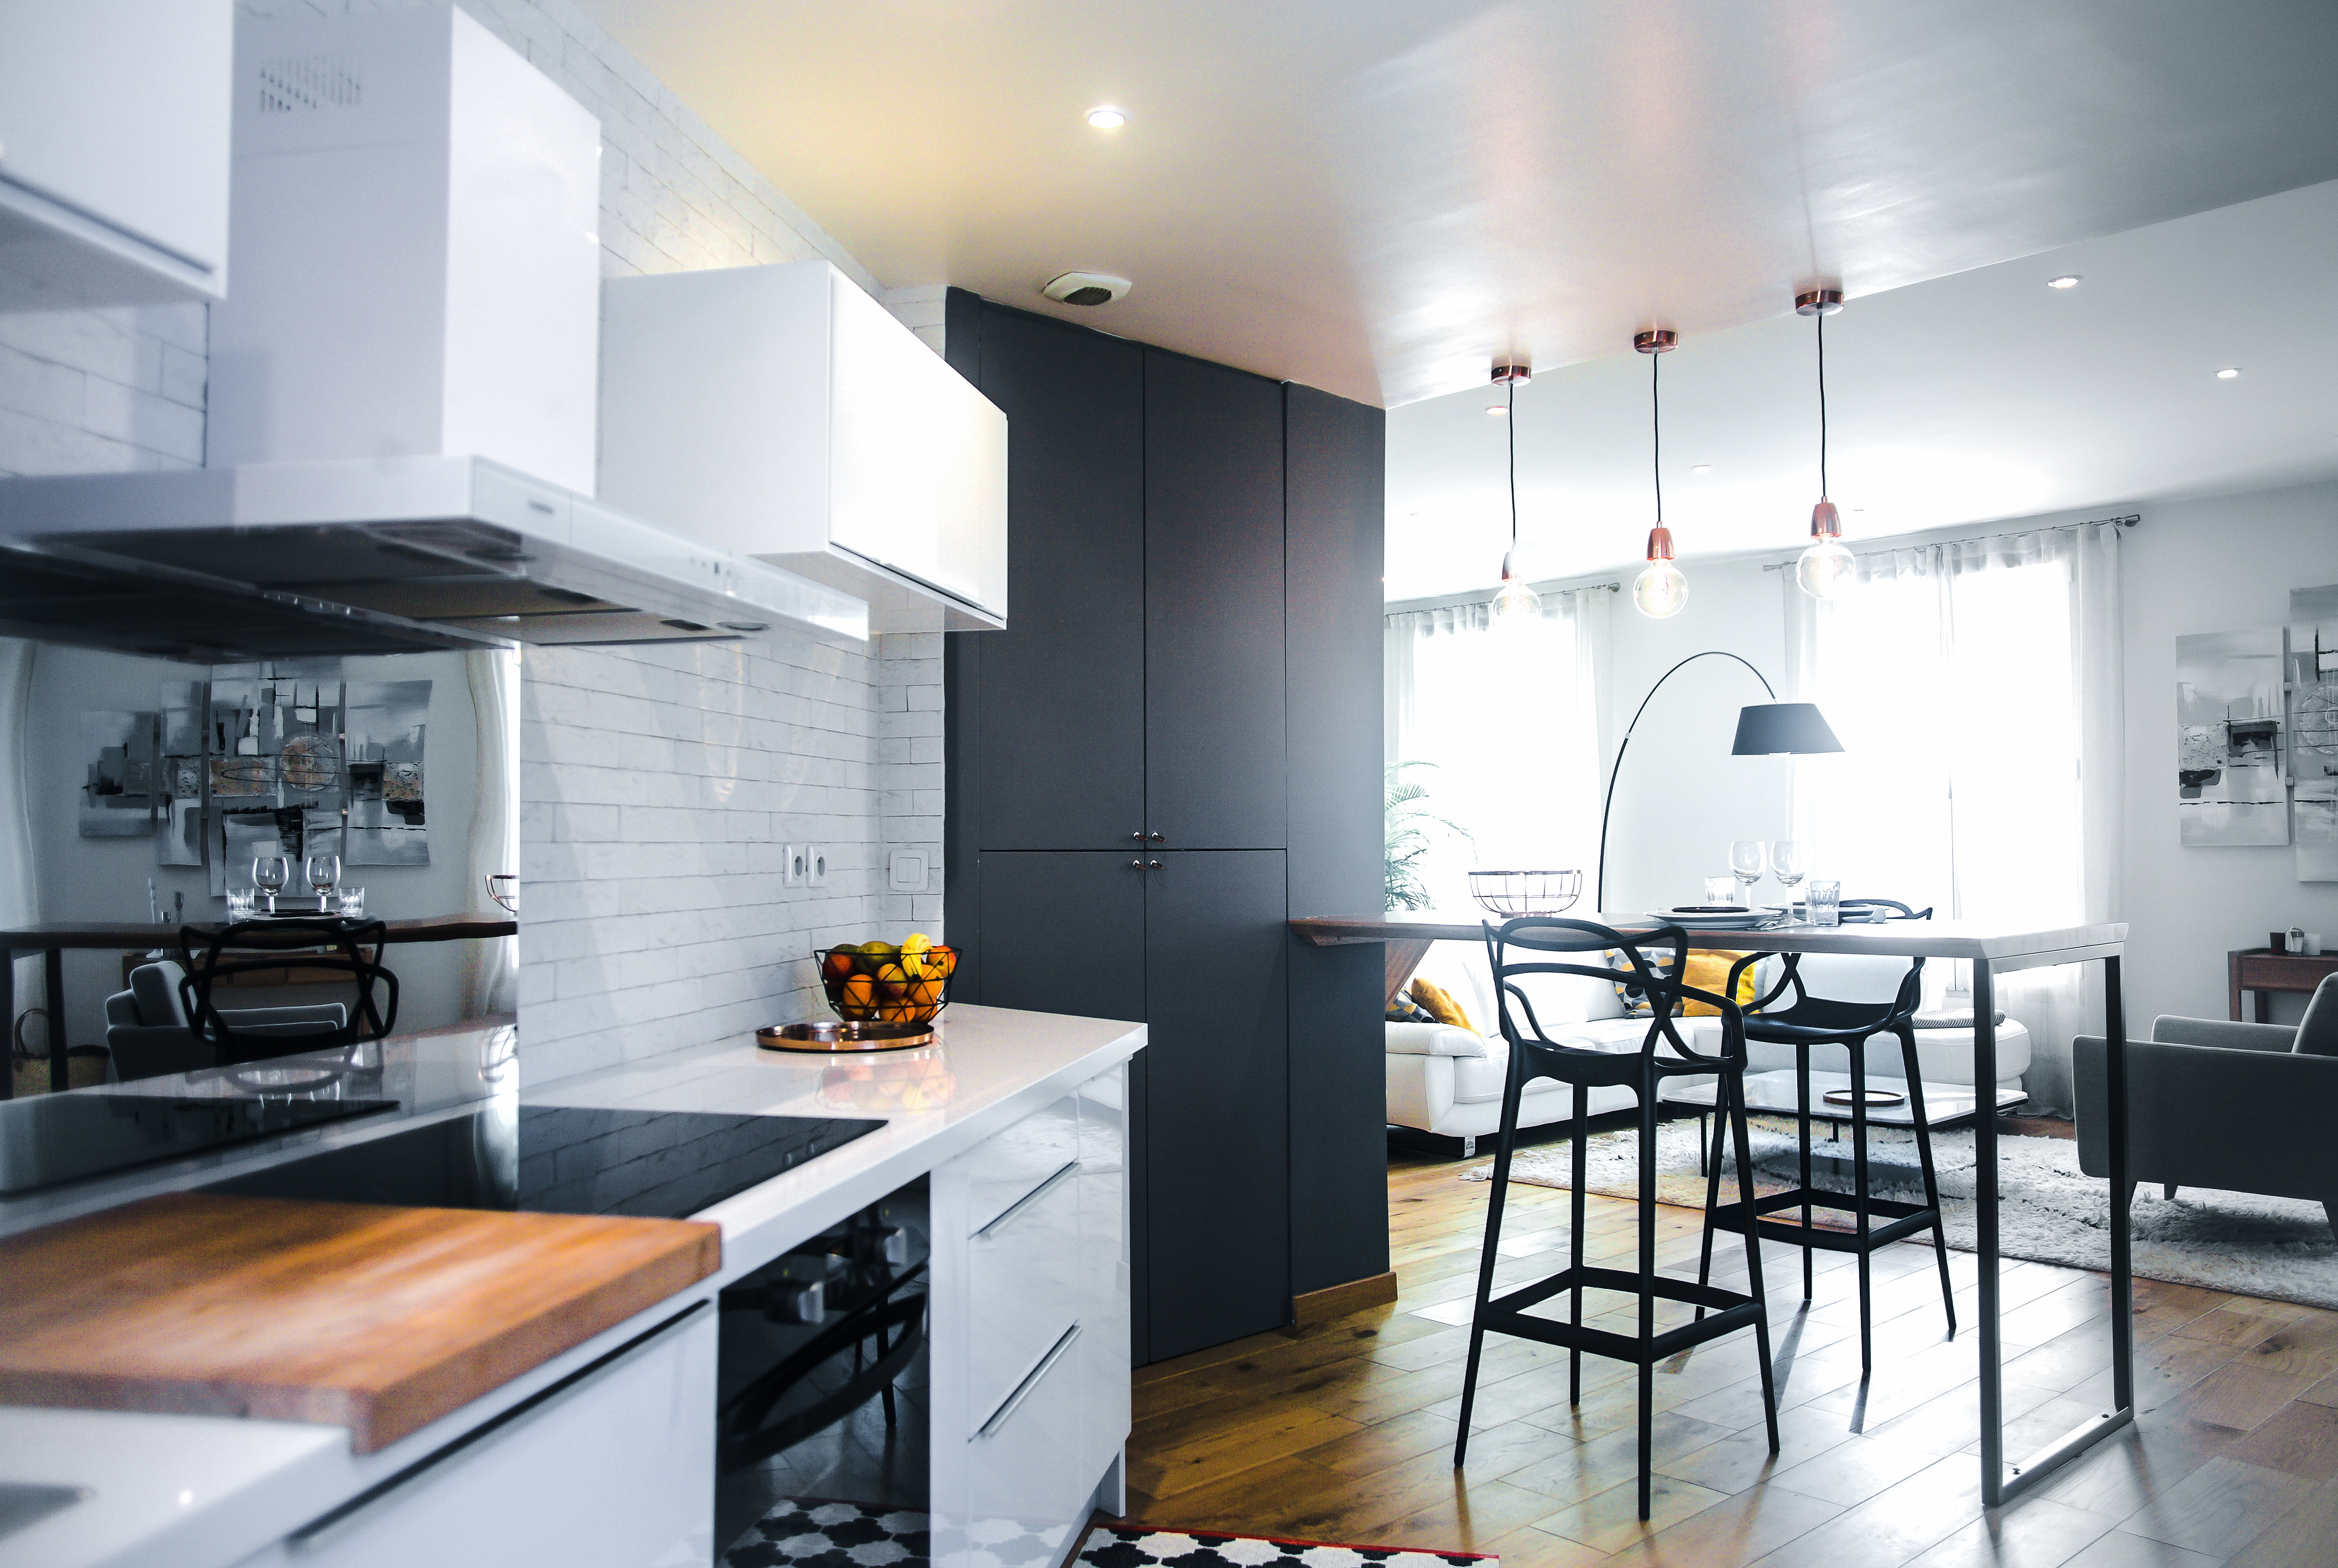 audrey boey architecte d 39 int rieur et d coratrice bordeaux cuisine ouverte. Black Bedroom Furniture Sets. Home Design Ideas